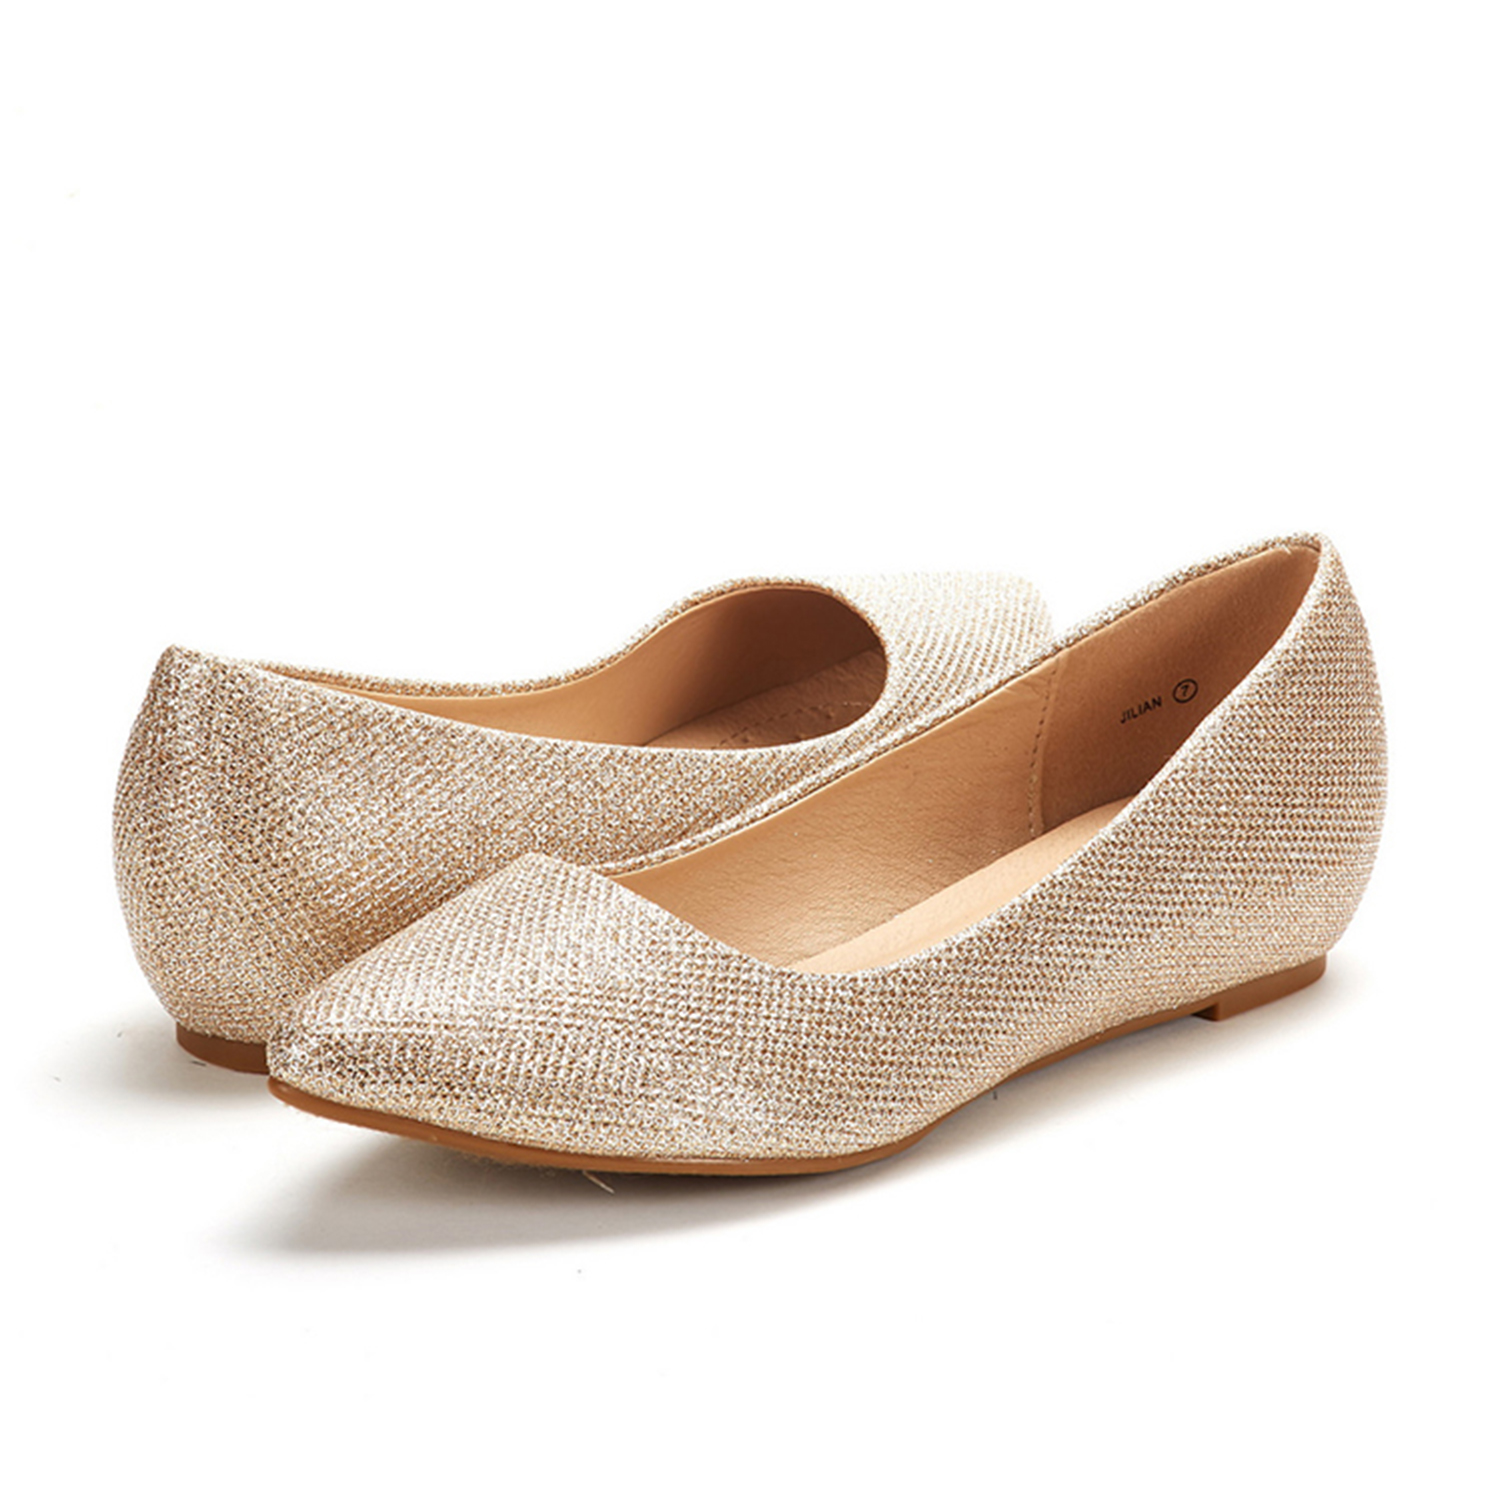 DREAM-PAIRS-Women-Low-Wedge-Flats-Ladies-Pointed-Toe-Slip-On-Comfort-Flat-Shoes thumbnail 31